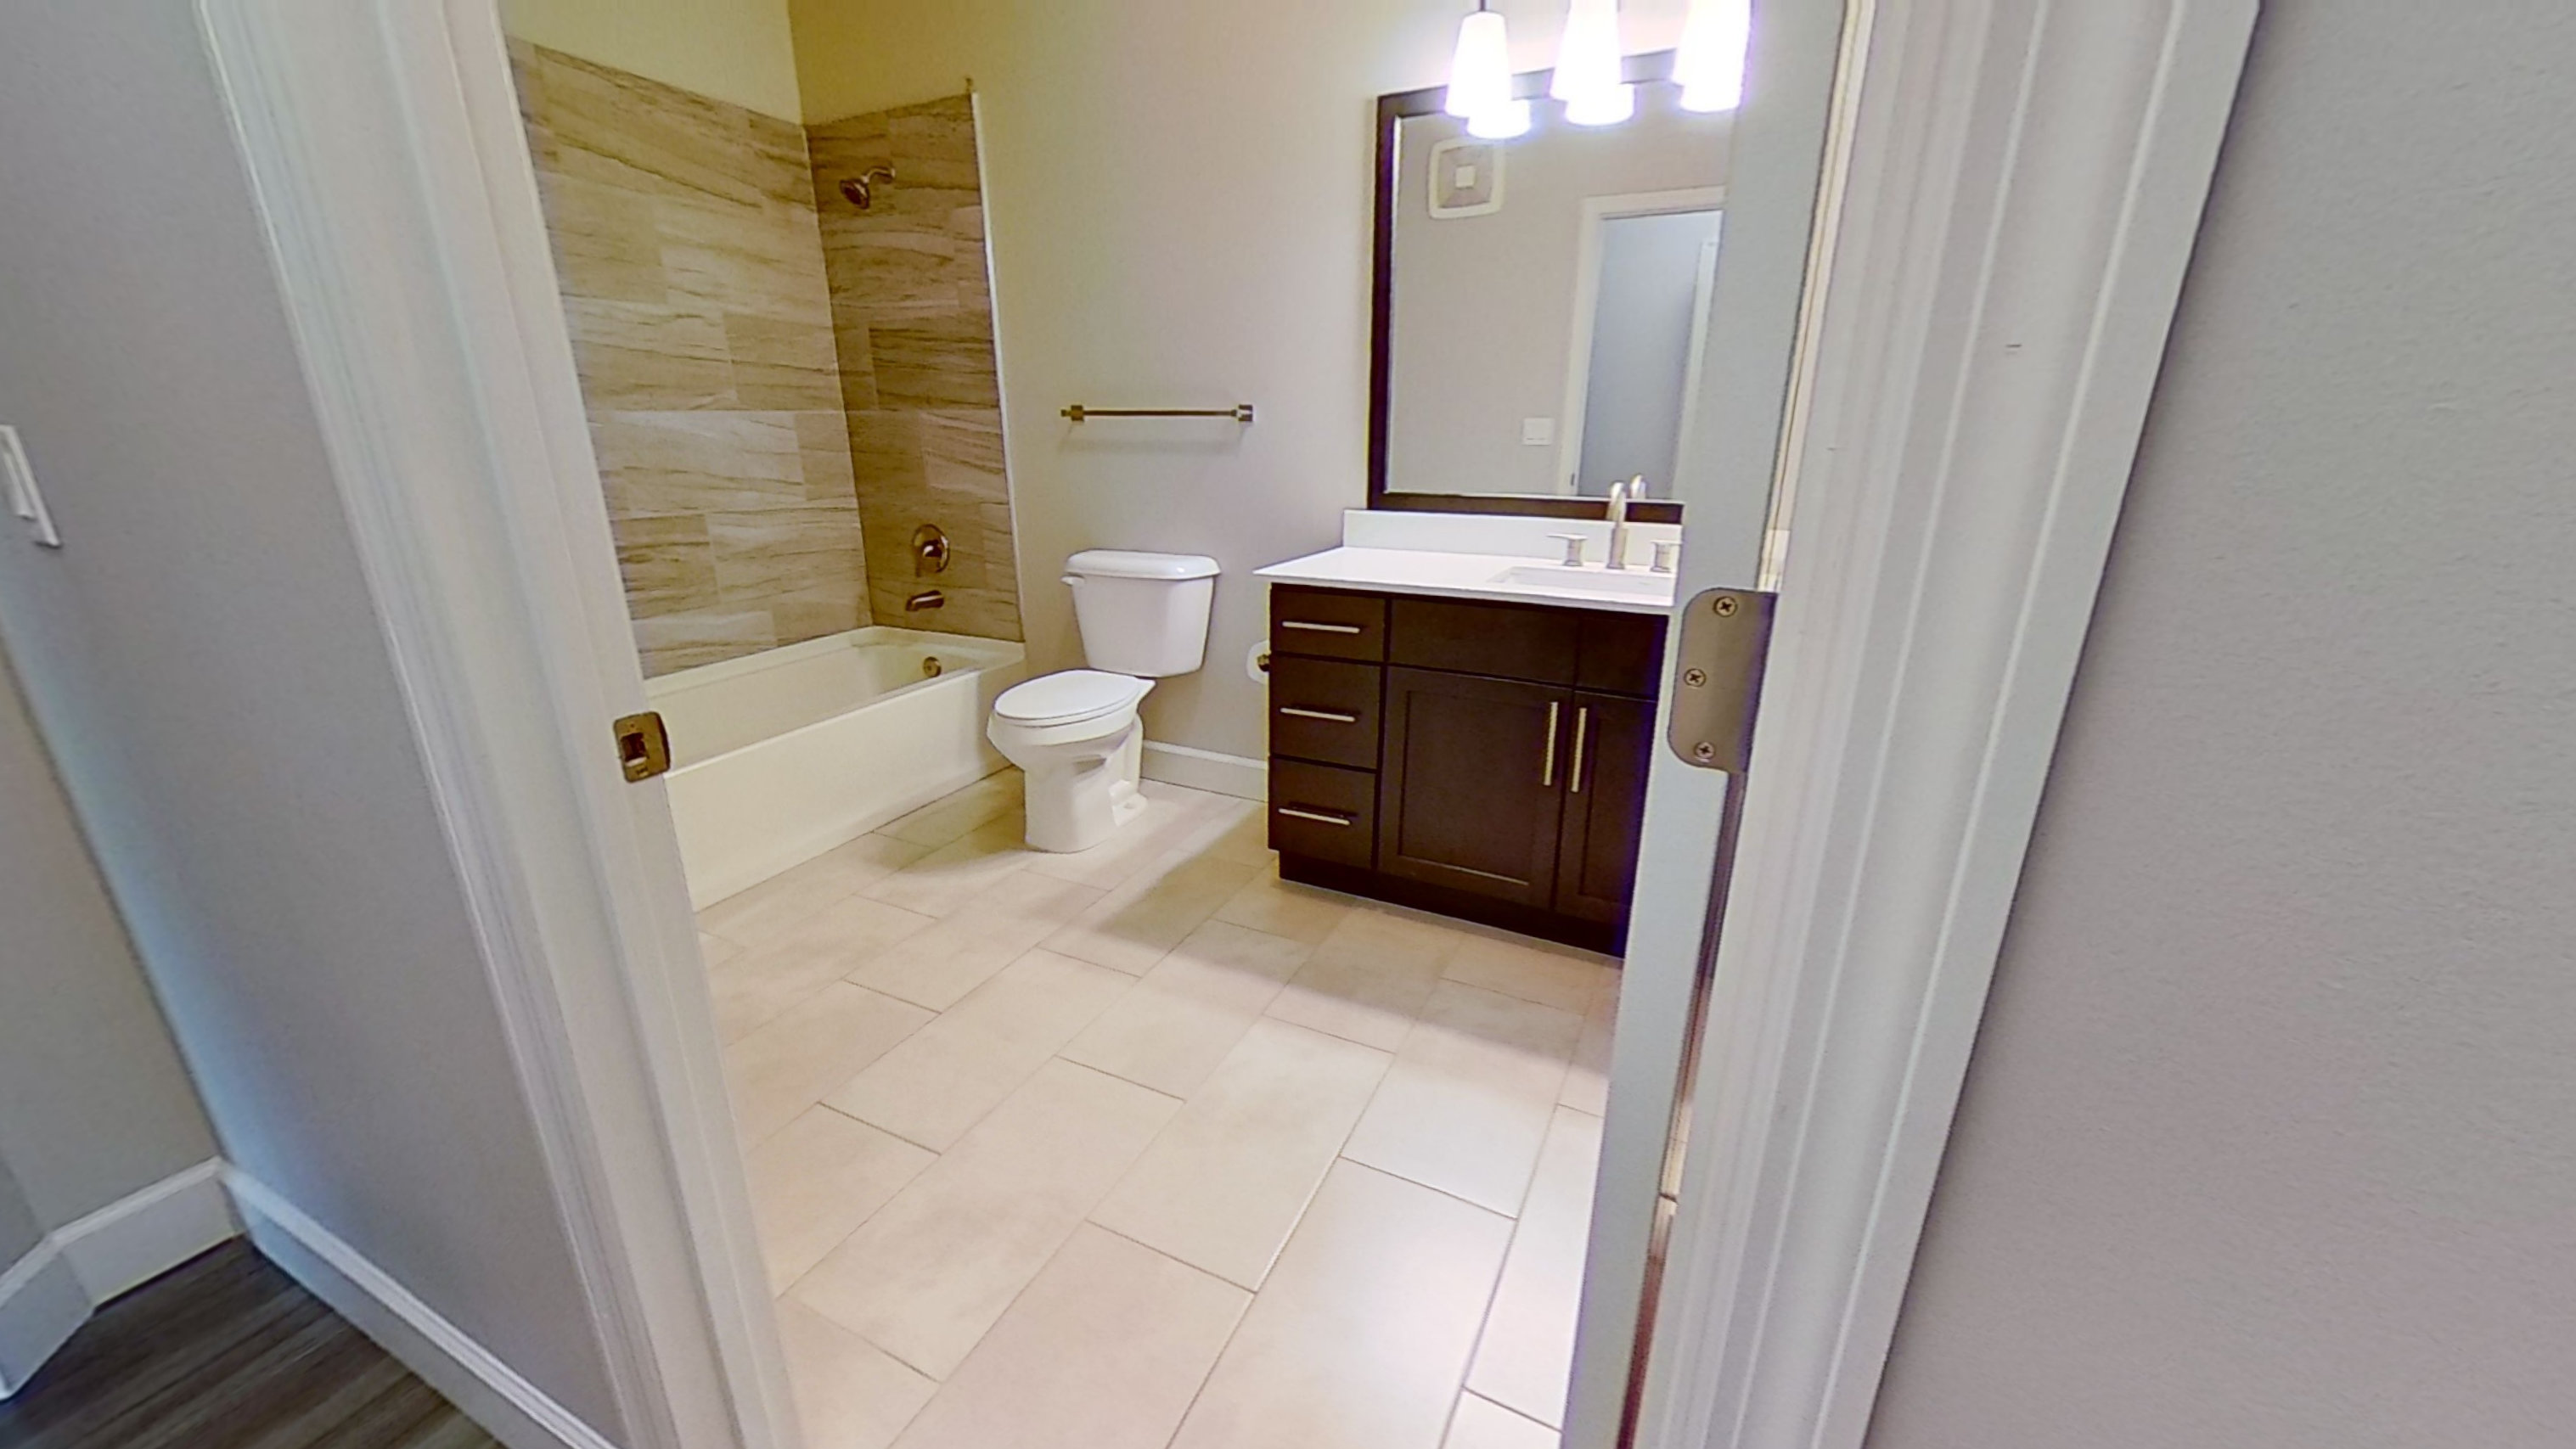 B4 Bathroom at the Vue at Creve Coeur Apartments in Creve Coeur, MO